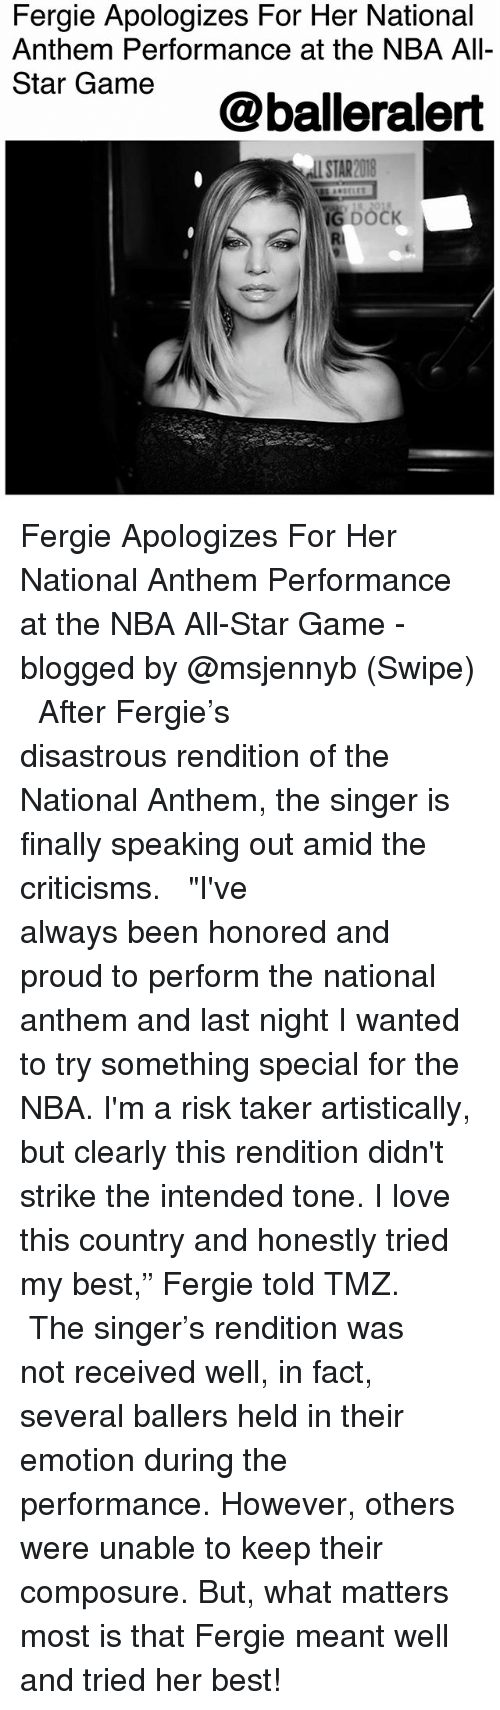 "All Star, Love, and Memes: Fergie Apologizes For Her National  Anthem Performance at the NBA All-  Star Game  @balleralert  STAR2018 Fergie Apologizes For Her National Anthem Performance at the NBA All-Star Game - blogged by @msjennyb (Swipe) ⠀⠀⠀⠀⠀⠀⠀ ⠀⠀⠀⠀⠀⠀⠀ After Fergie's disastrous rendition of the National Anthem, the singer is finally speaking out amid the criticisms. ⠀⠀⠀⠀⠀⠀⠀ ⠀⠀⠀⠀⠀⠀⠀ ""I've always been honored and proud to perform the national anthem and last night I wanted to try something special for the NBA. I'm a risk taker artistically, but clearly this rendition didn't strike the intended tone. I love this country and honestly tried my best,"" Fergie told TMZ. ⠀⠀⠀⠀⠀⠀⠀ ⠀⠀⠀⠀⠀⠀⠀ The singer's rendition was not received well, in fact, several ballers held in their emotion during the performance. However, others were unable to keep their composure. But, what matters most is that Fergie meant well and tried her best!"